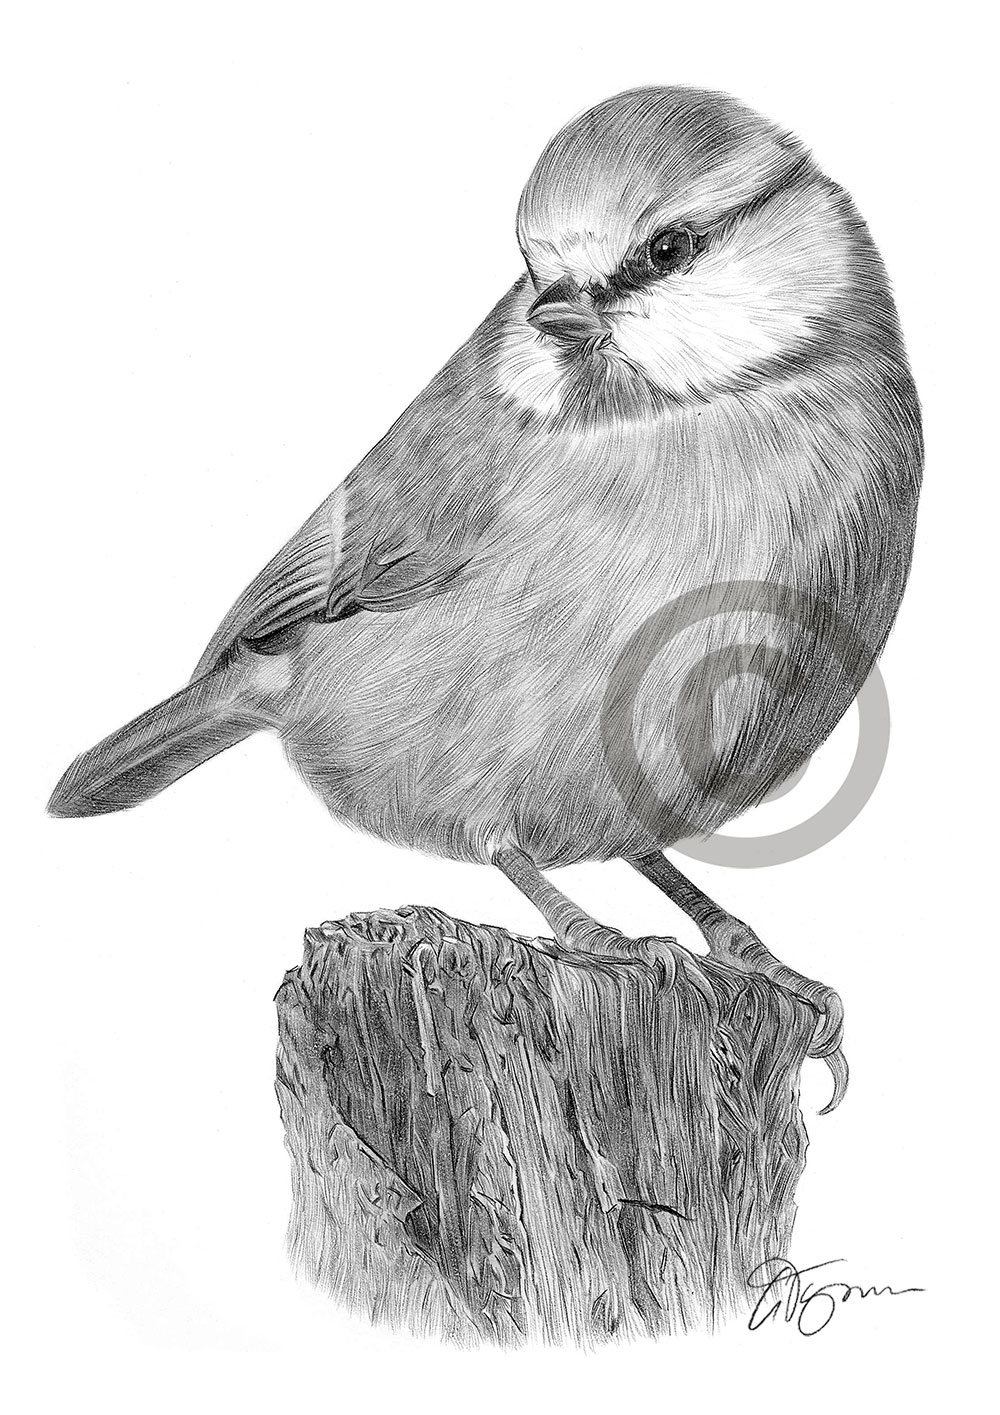 Pencil drawing of a blue tit by artist Gary Tymon